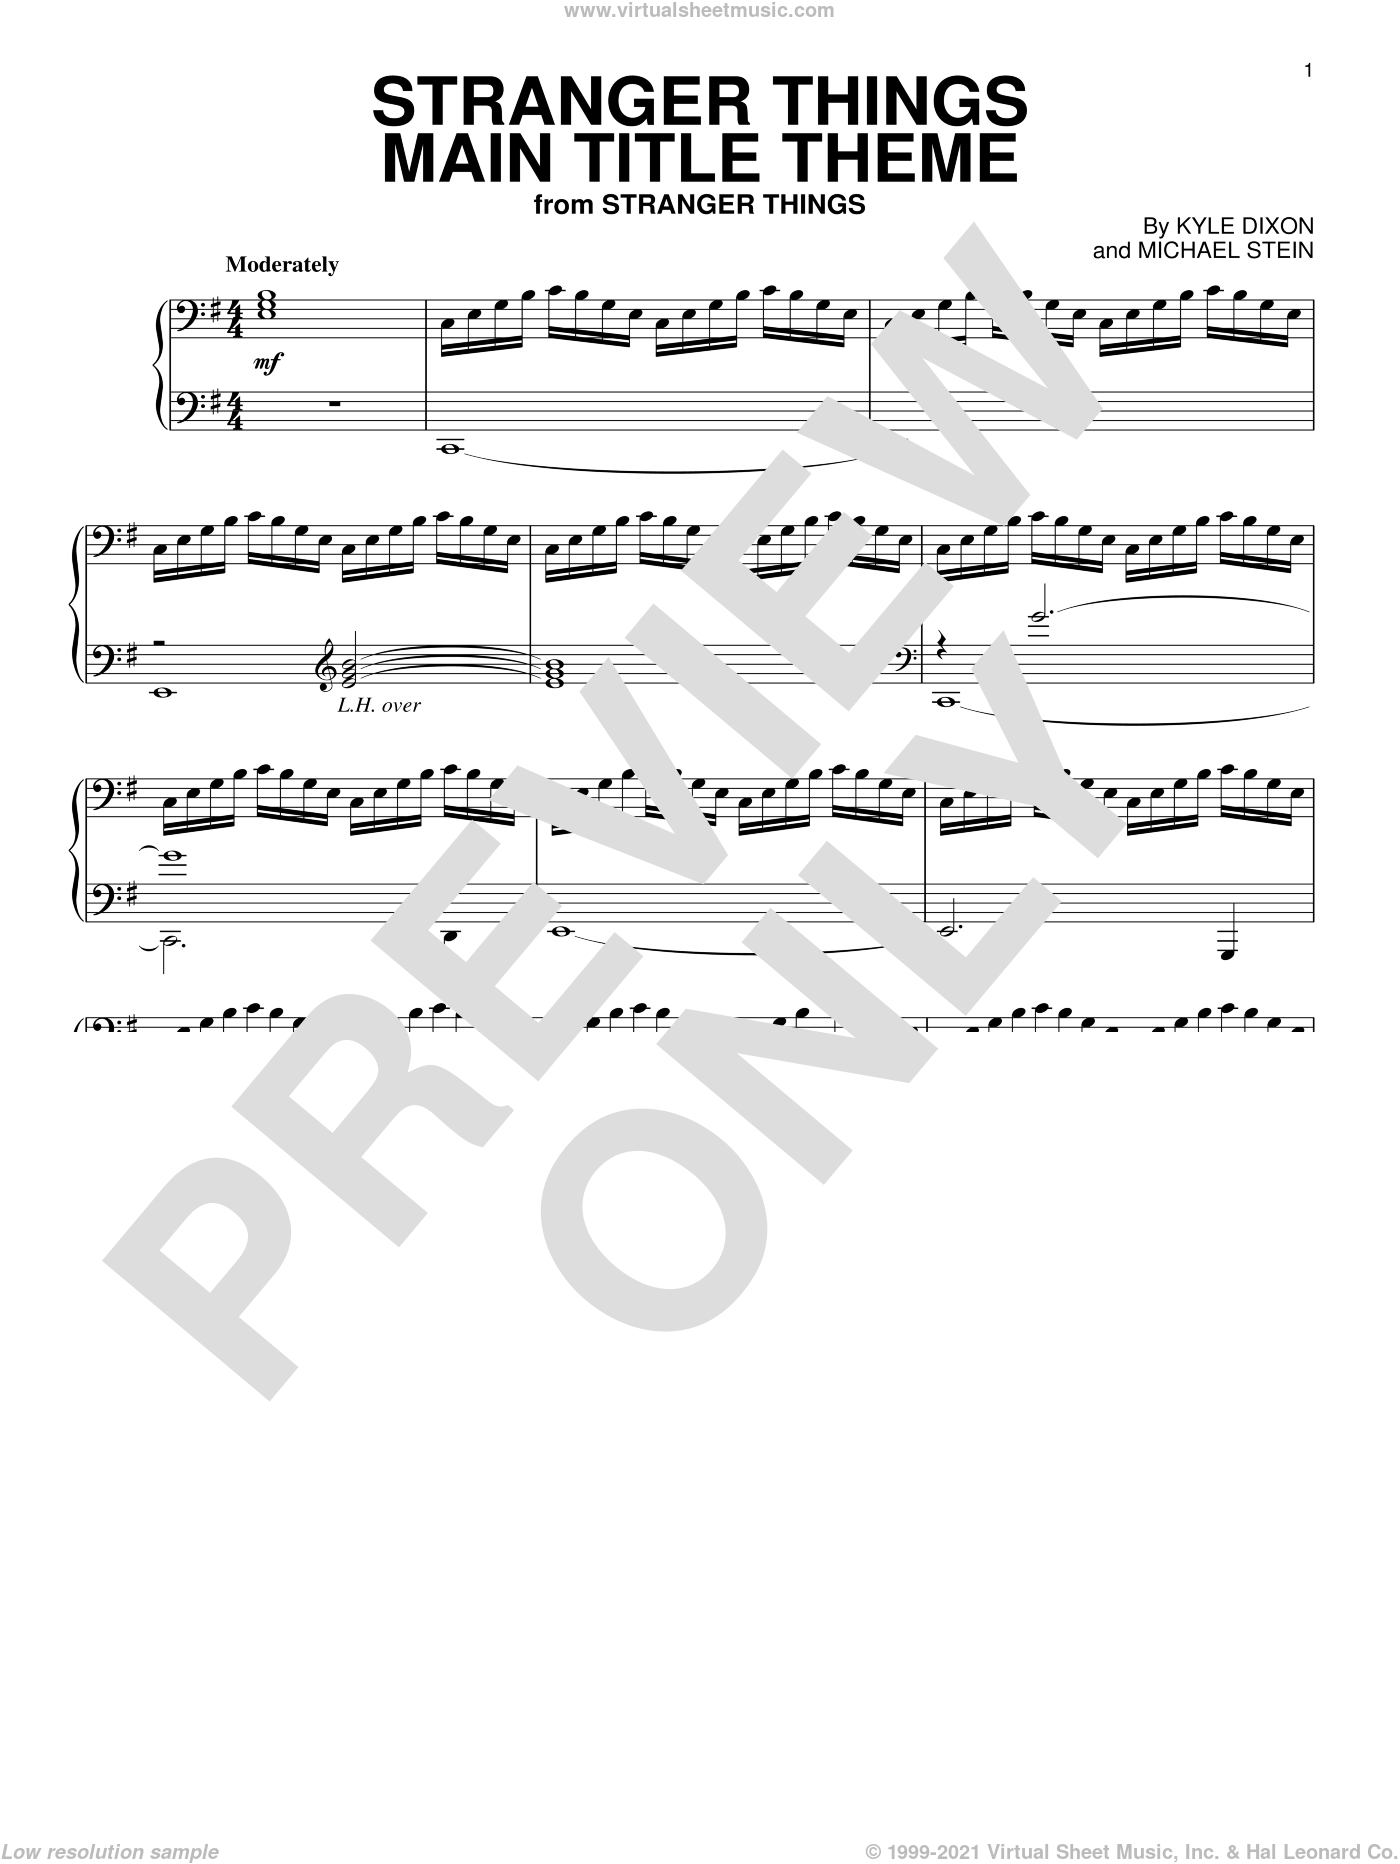 Stranger Things Main Title Theme sheet music for piano solo by Kyle Dixon & Michael Stein, Kyle Dixon and Michael Stein, intermediate skill level